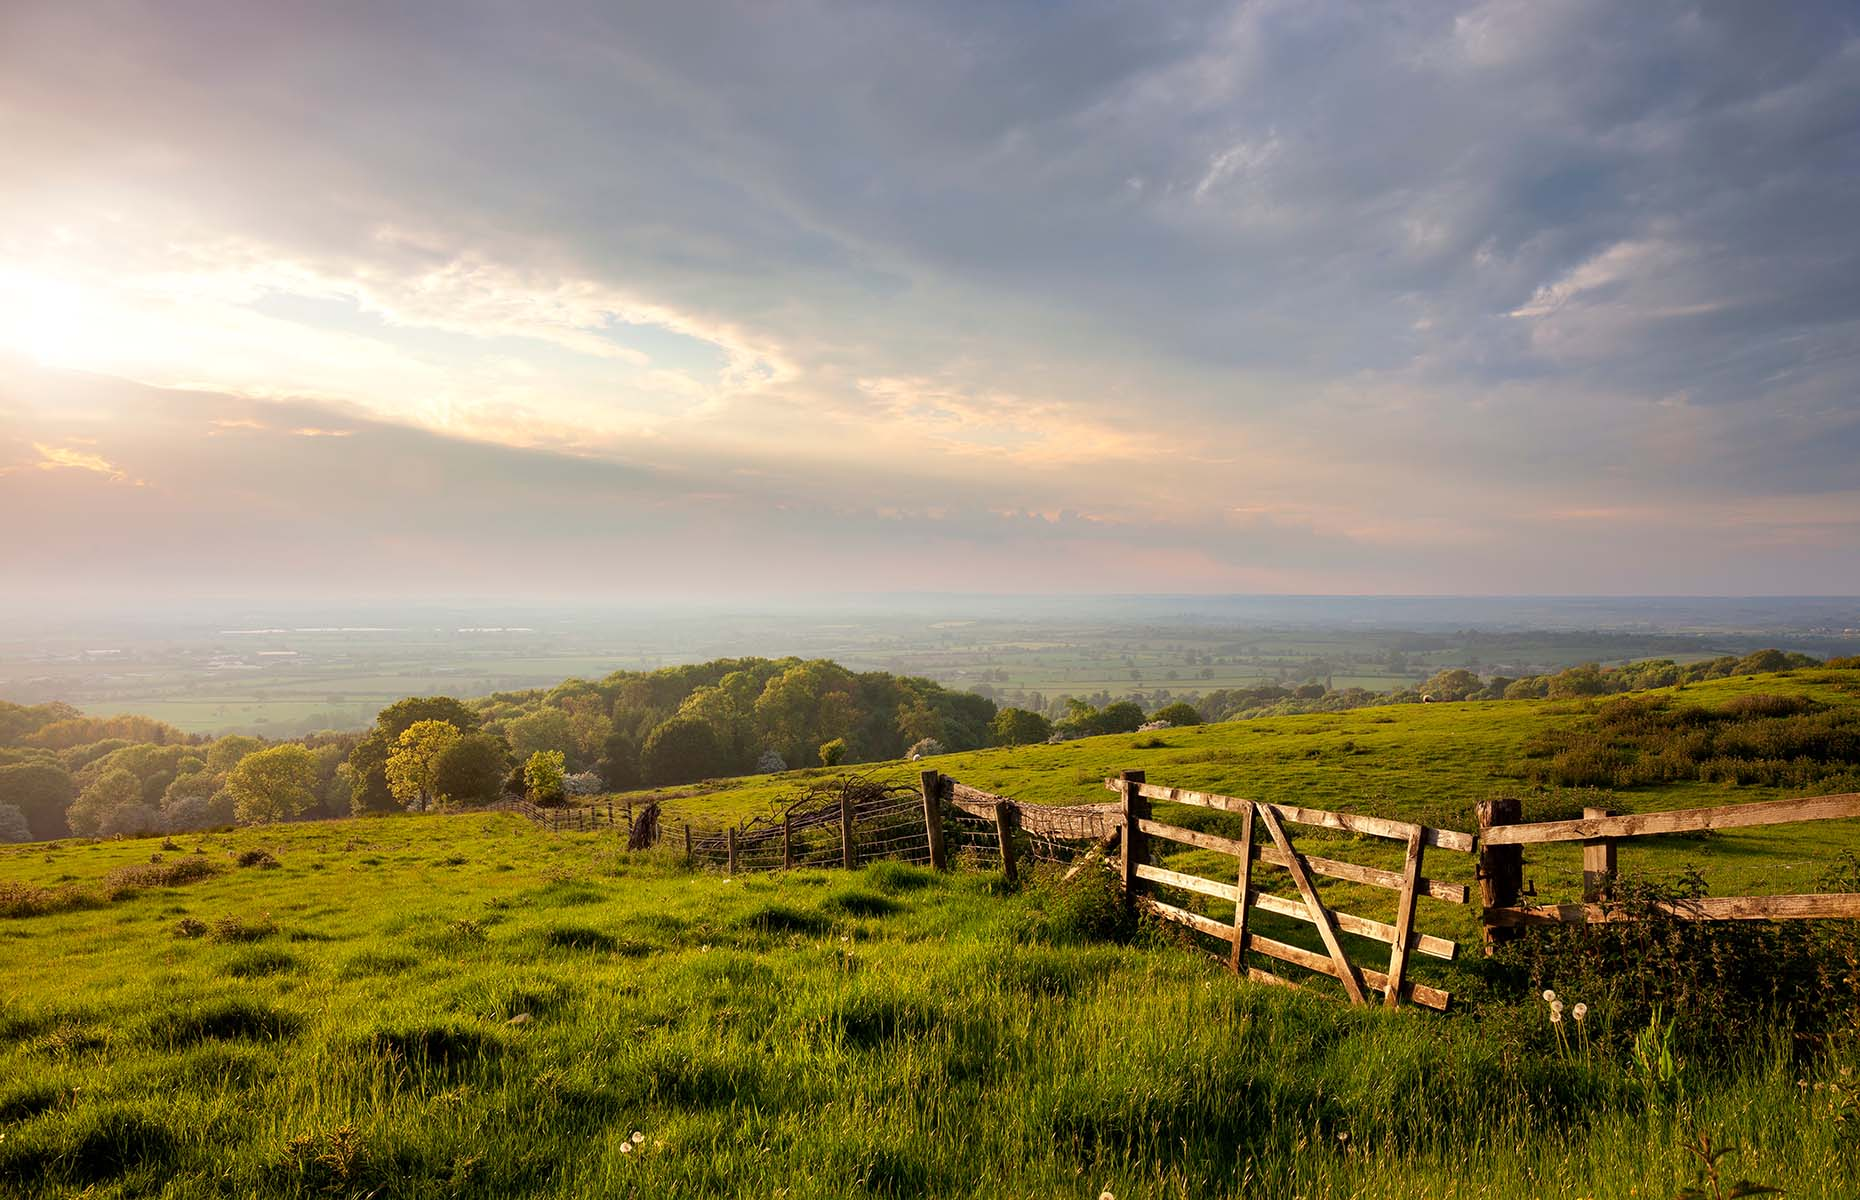 North Cotswolds landscape (Image: Andrew Roland/Shutterstock)